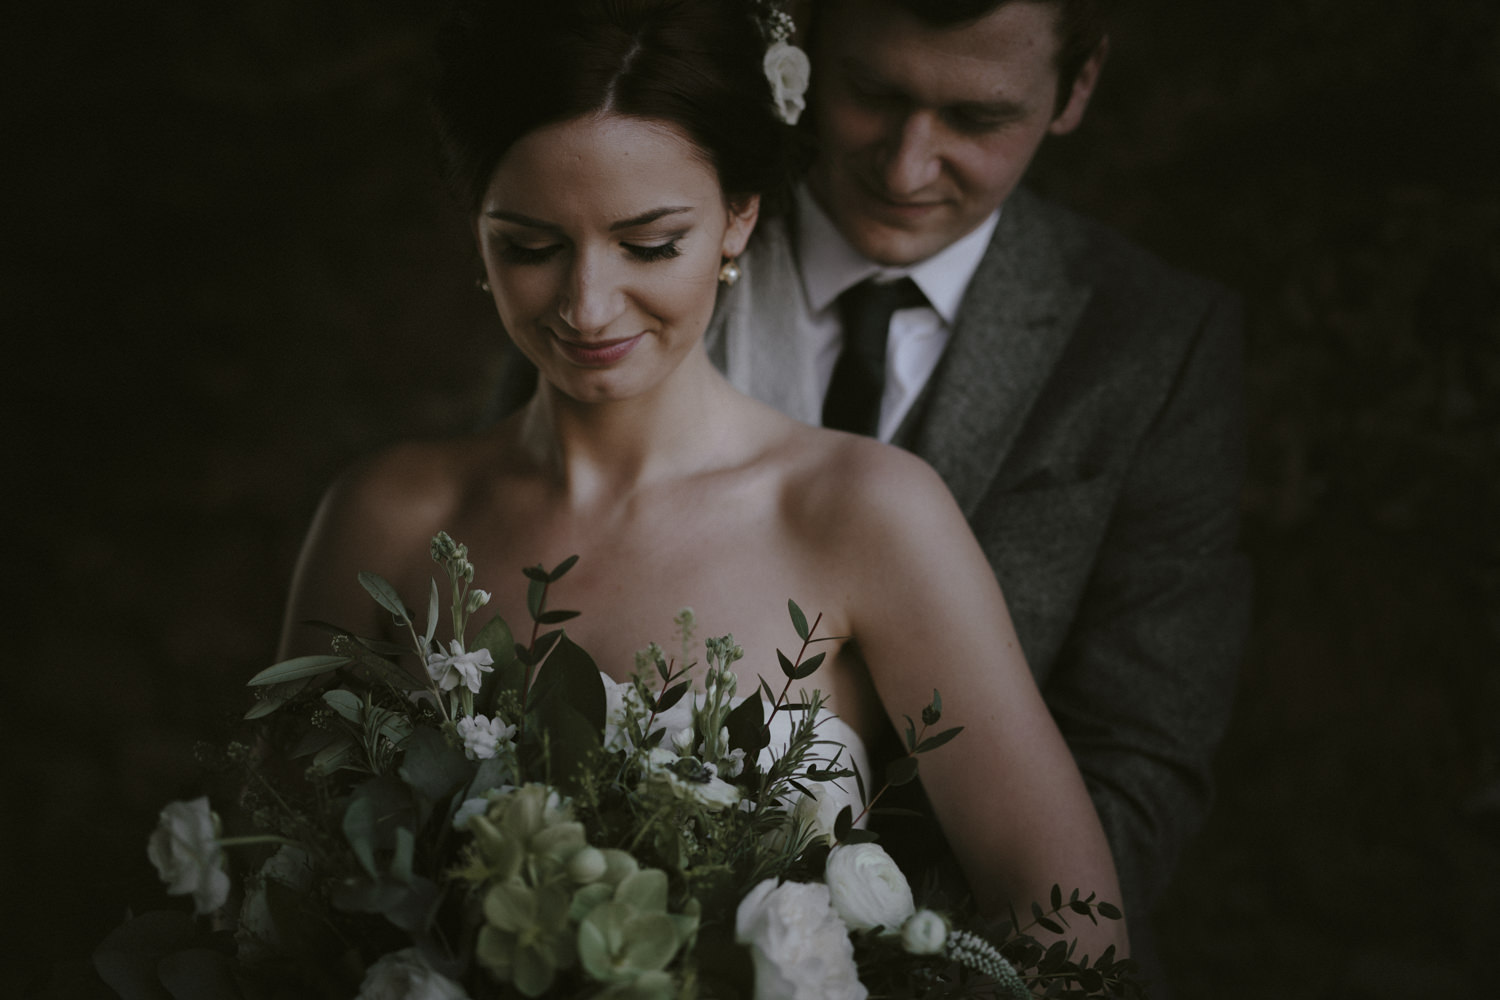 Askham-Hall-Wedding-Websize-330.jpg